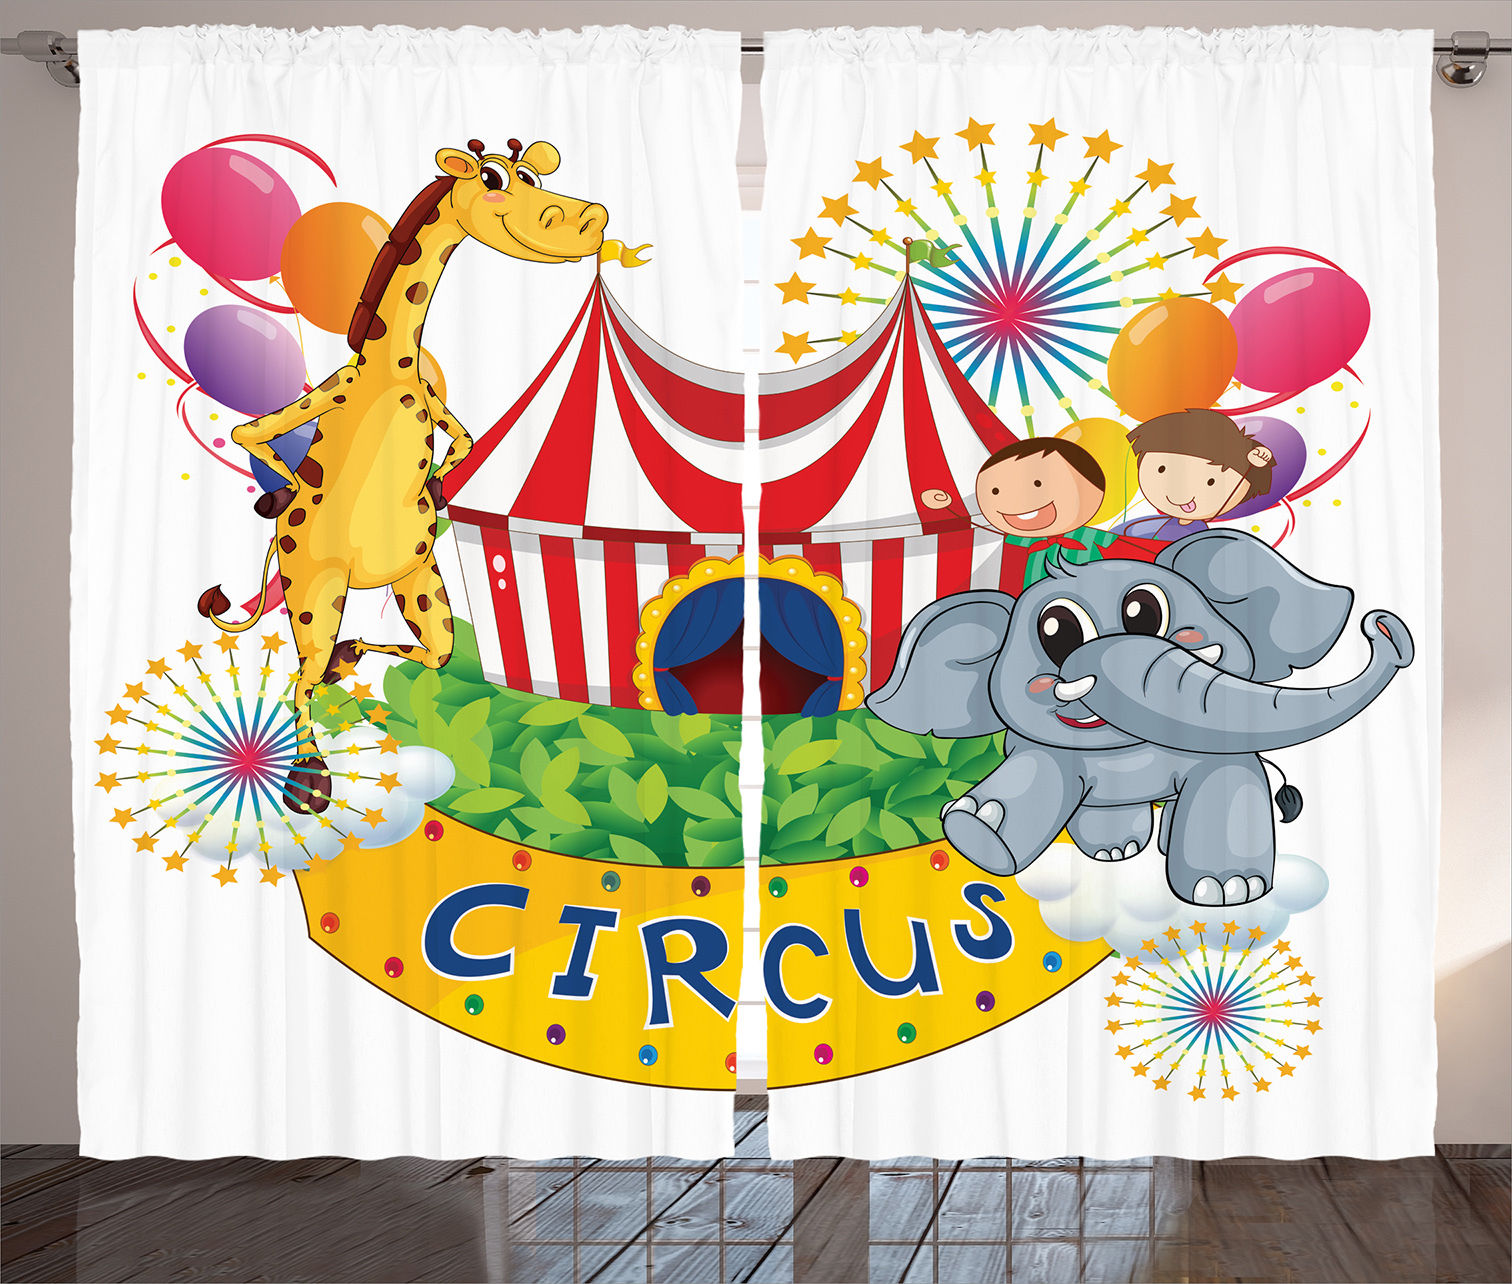 Circus Decor Curtains 2 Panels Set, Circus Show With Kids And Animals Smiling Magician Children Happiness, Living Room... by Kozmos